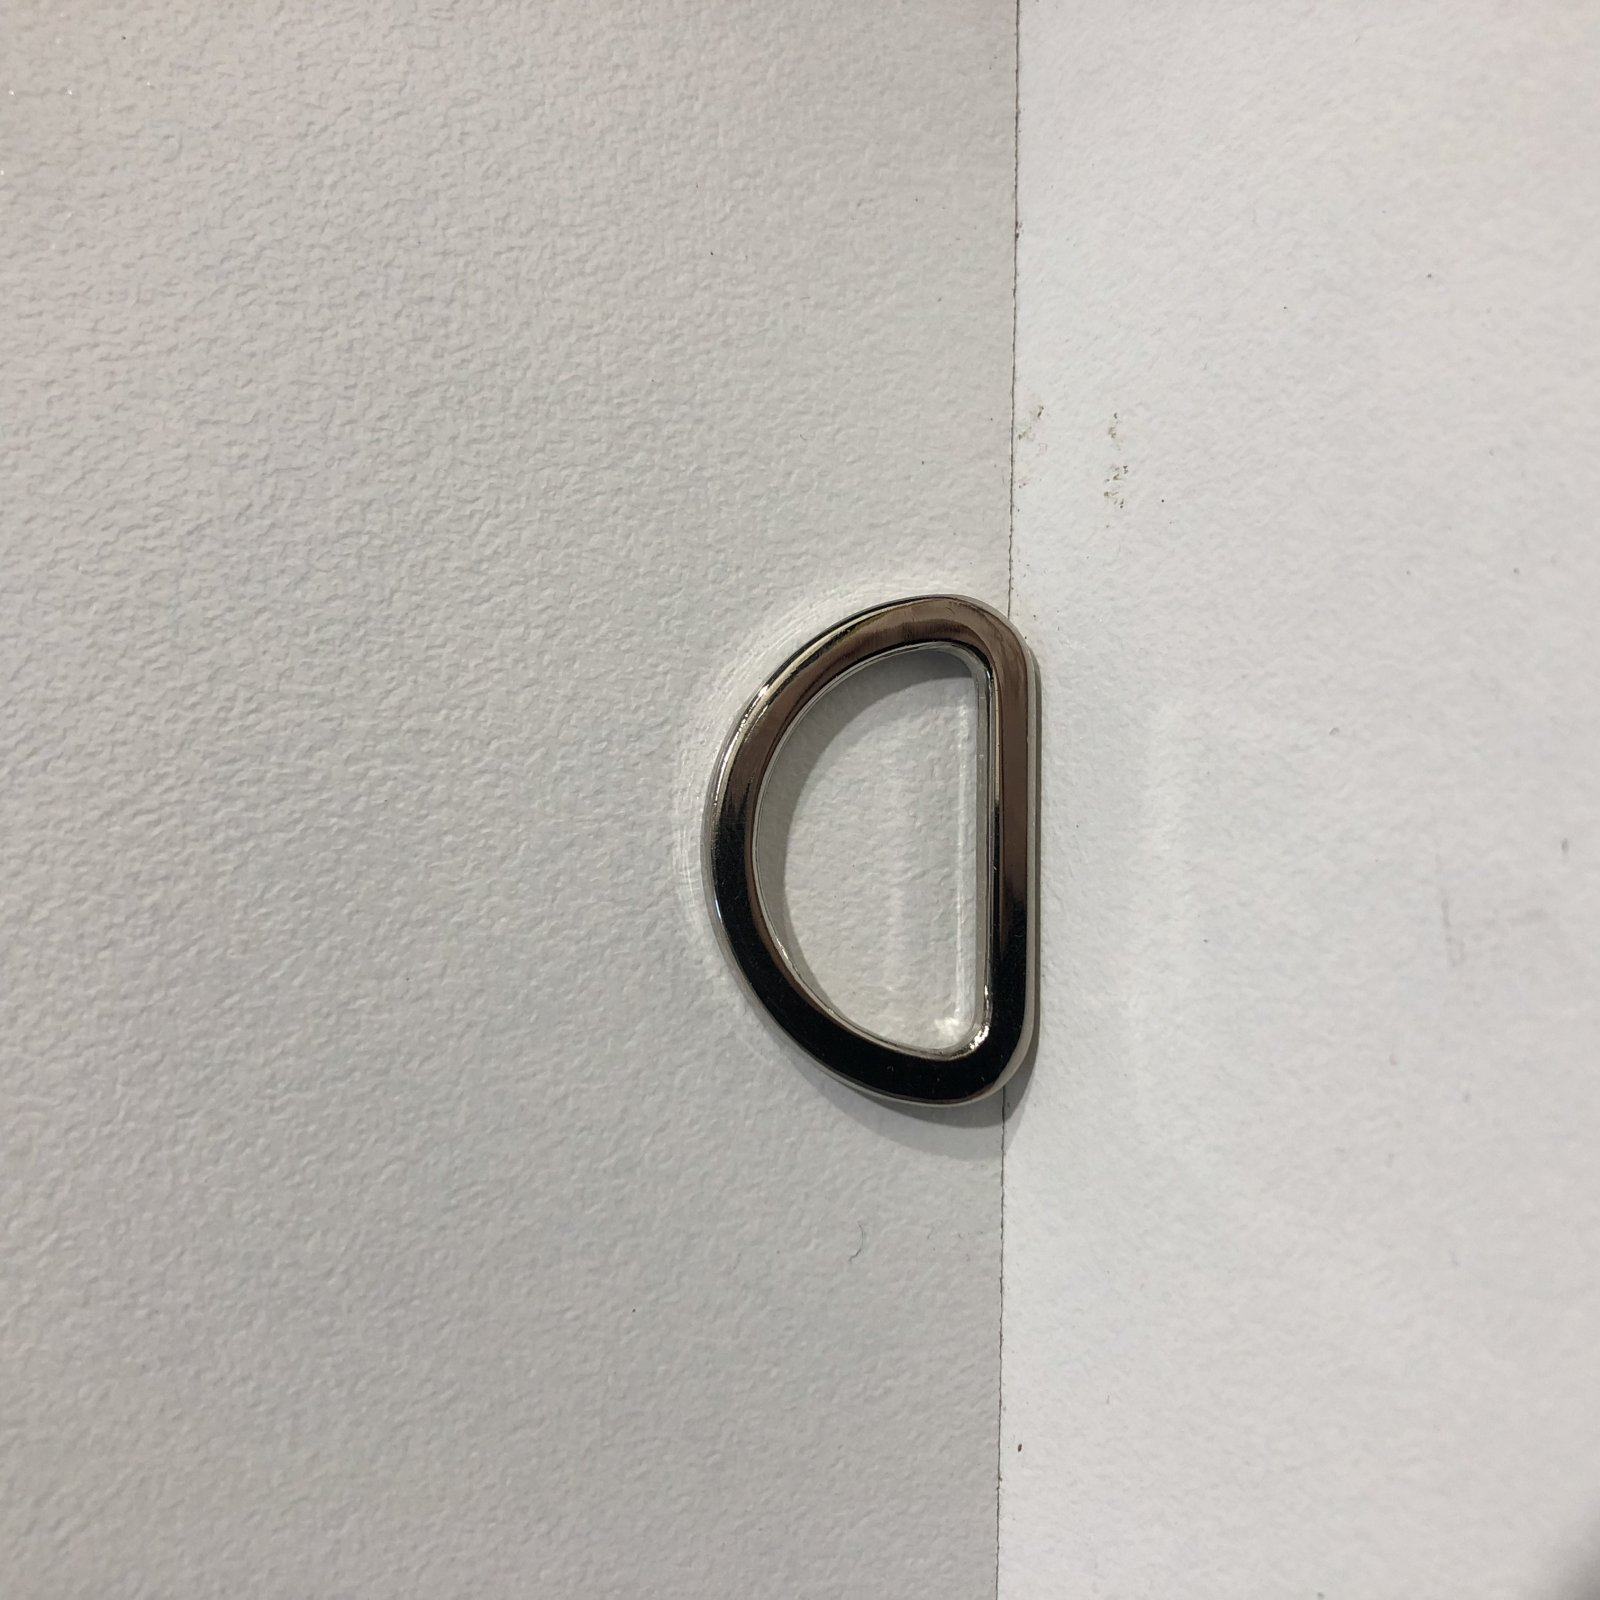 Silver 1.25 D Ring